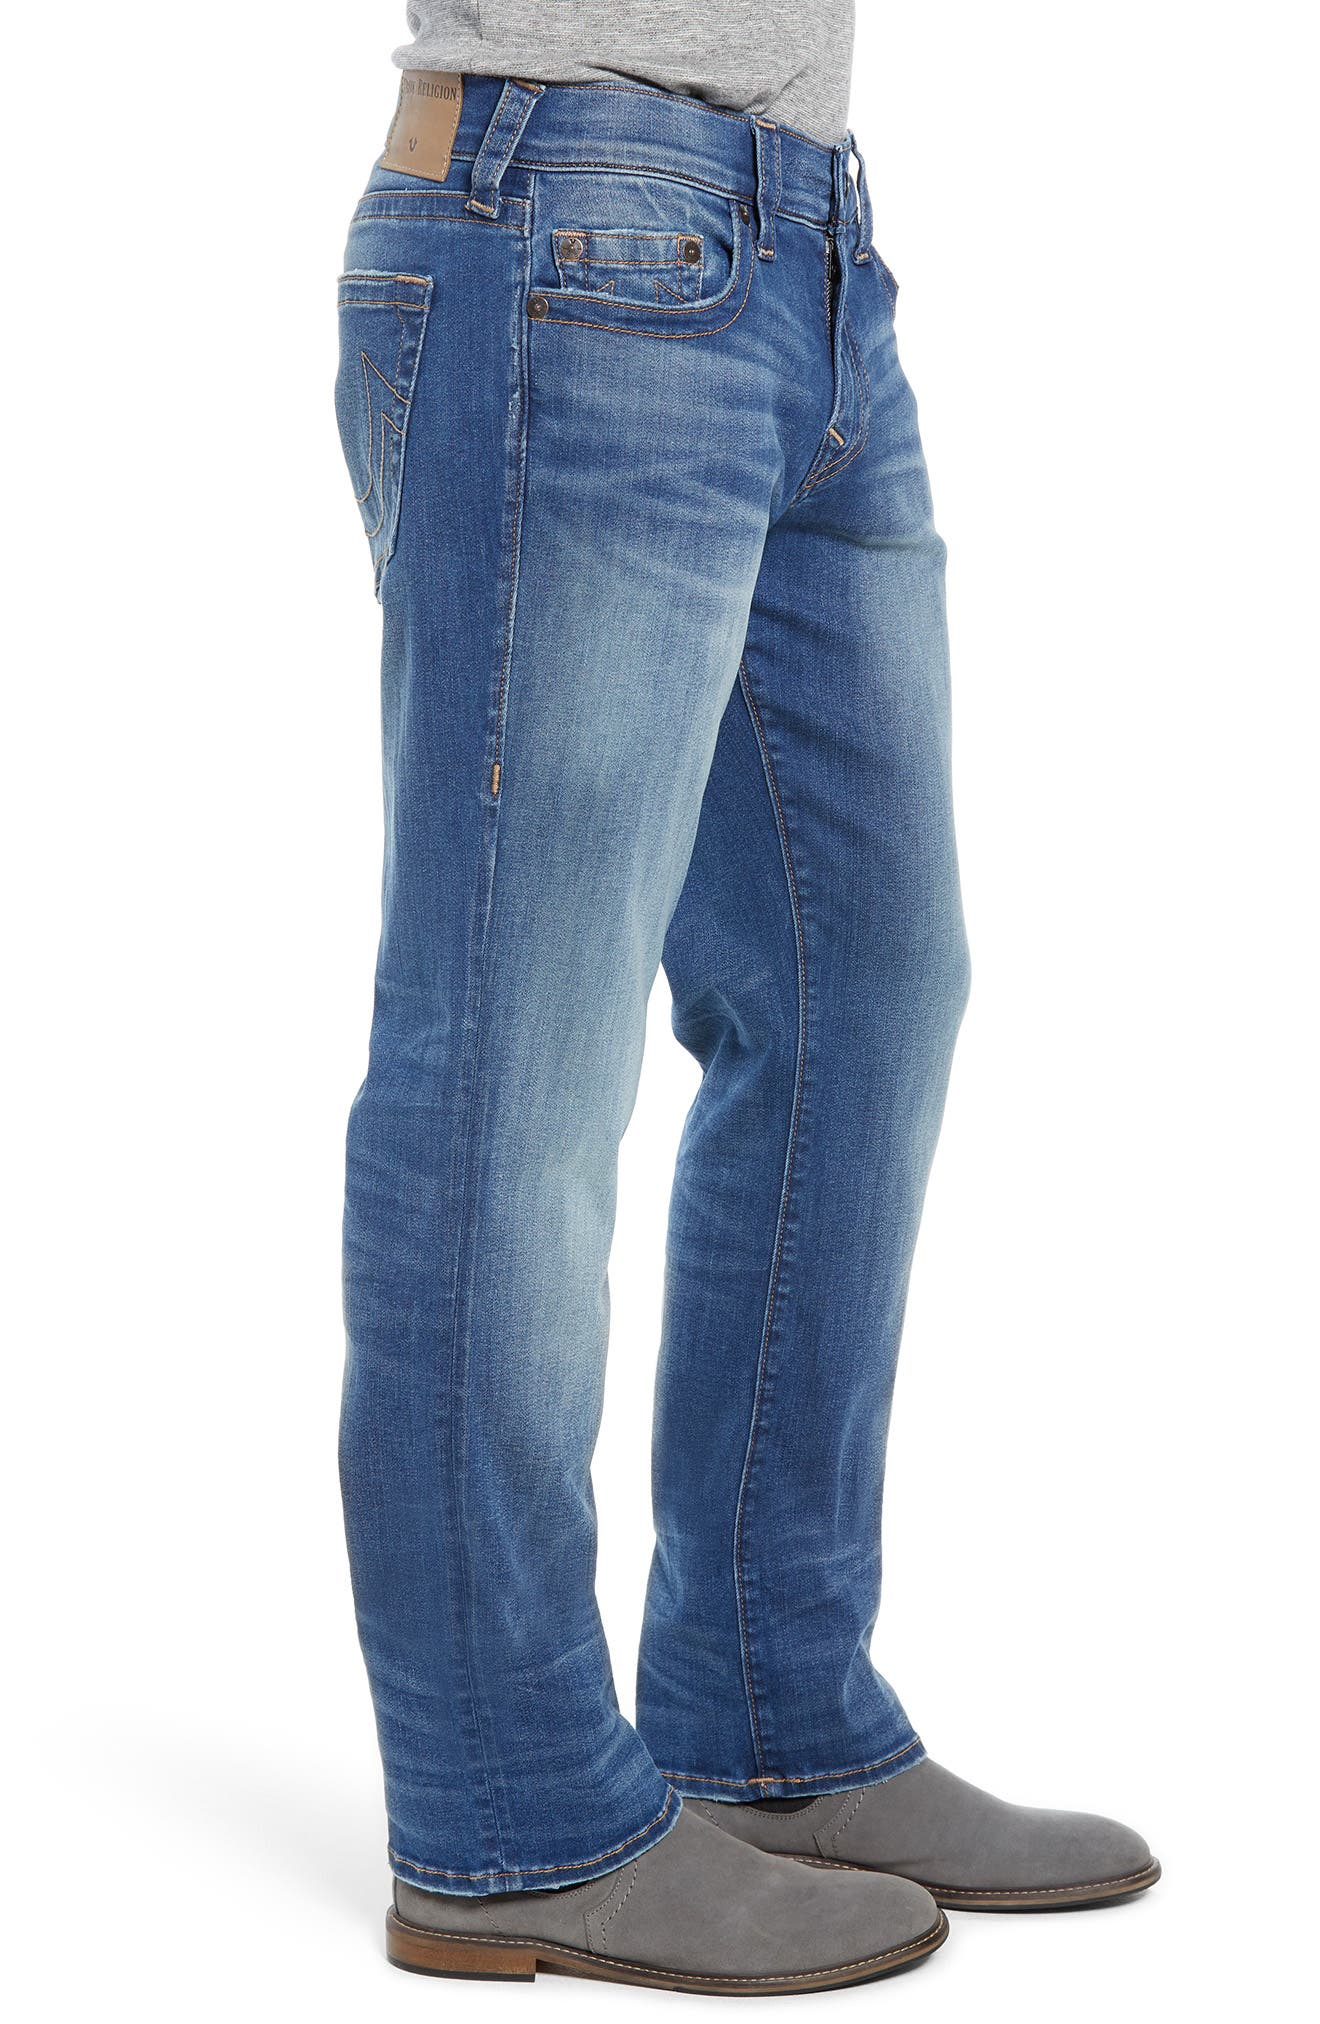 Ricky Relaxed Fit Jeans,                             Alternate thumbnail 3, color,                             SUPERNOVA BLUES